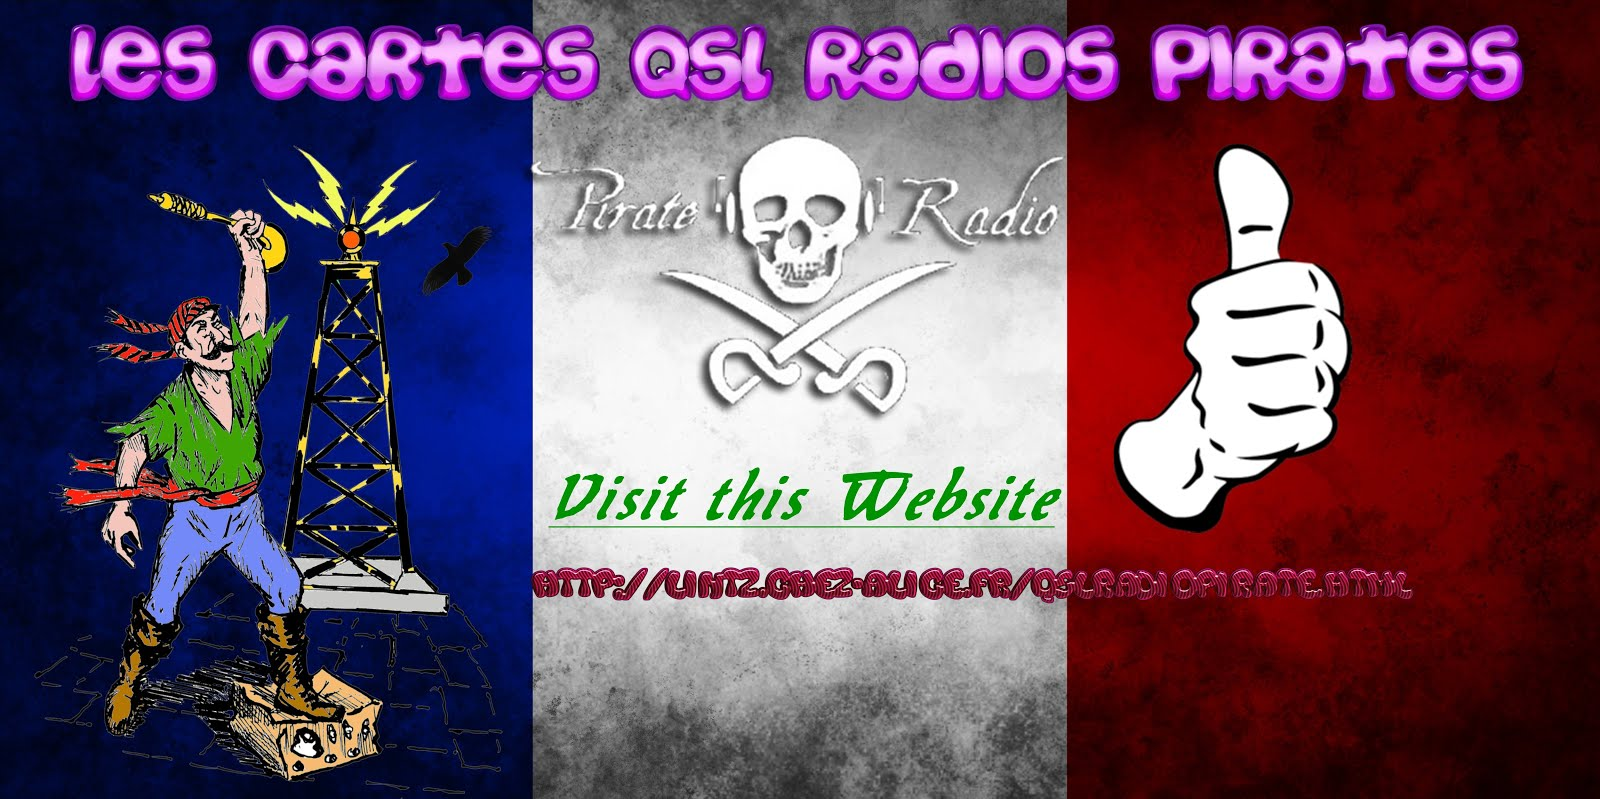 Joel Les Cartes QSL Radio Pirates